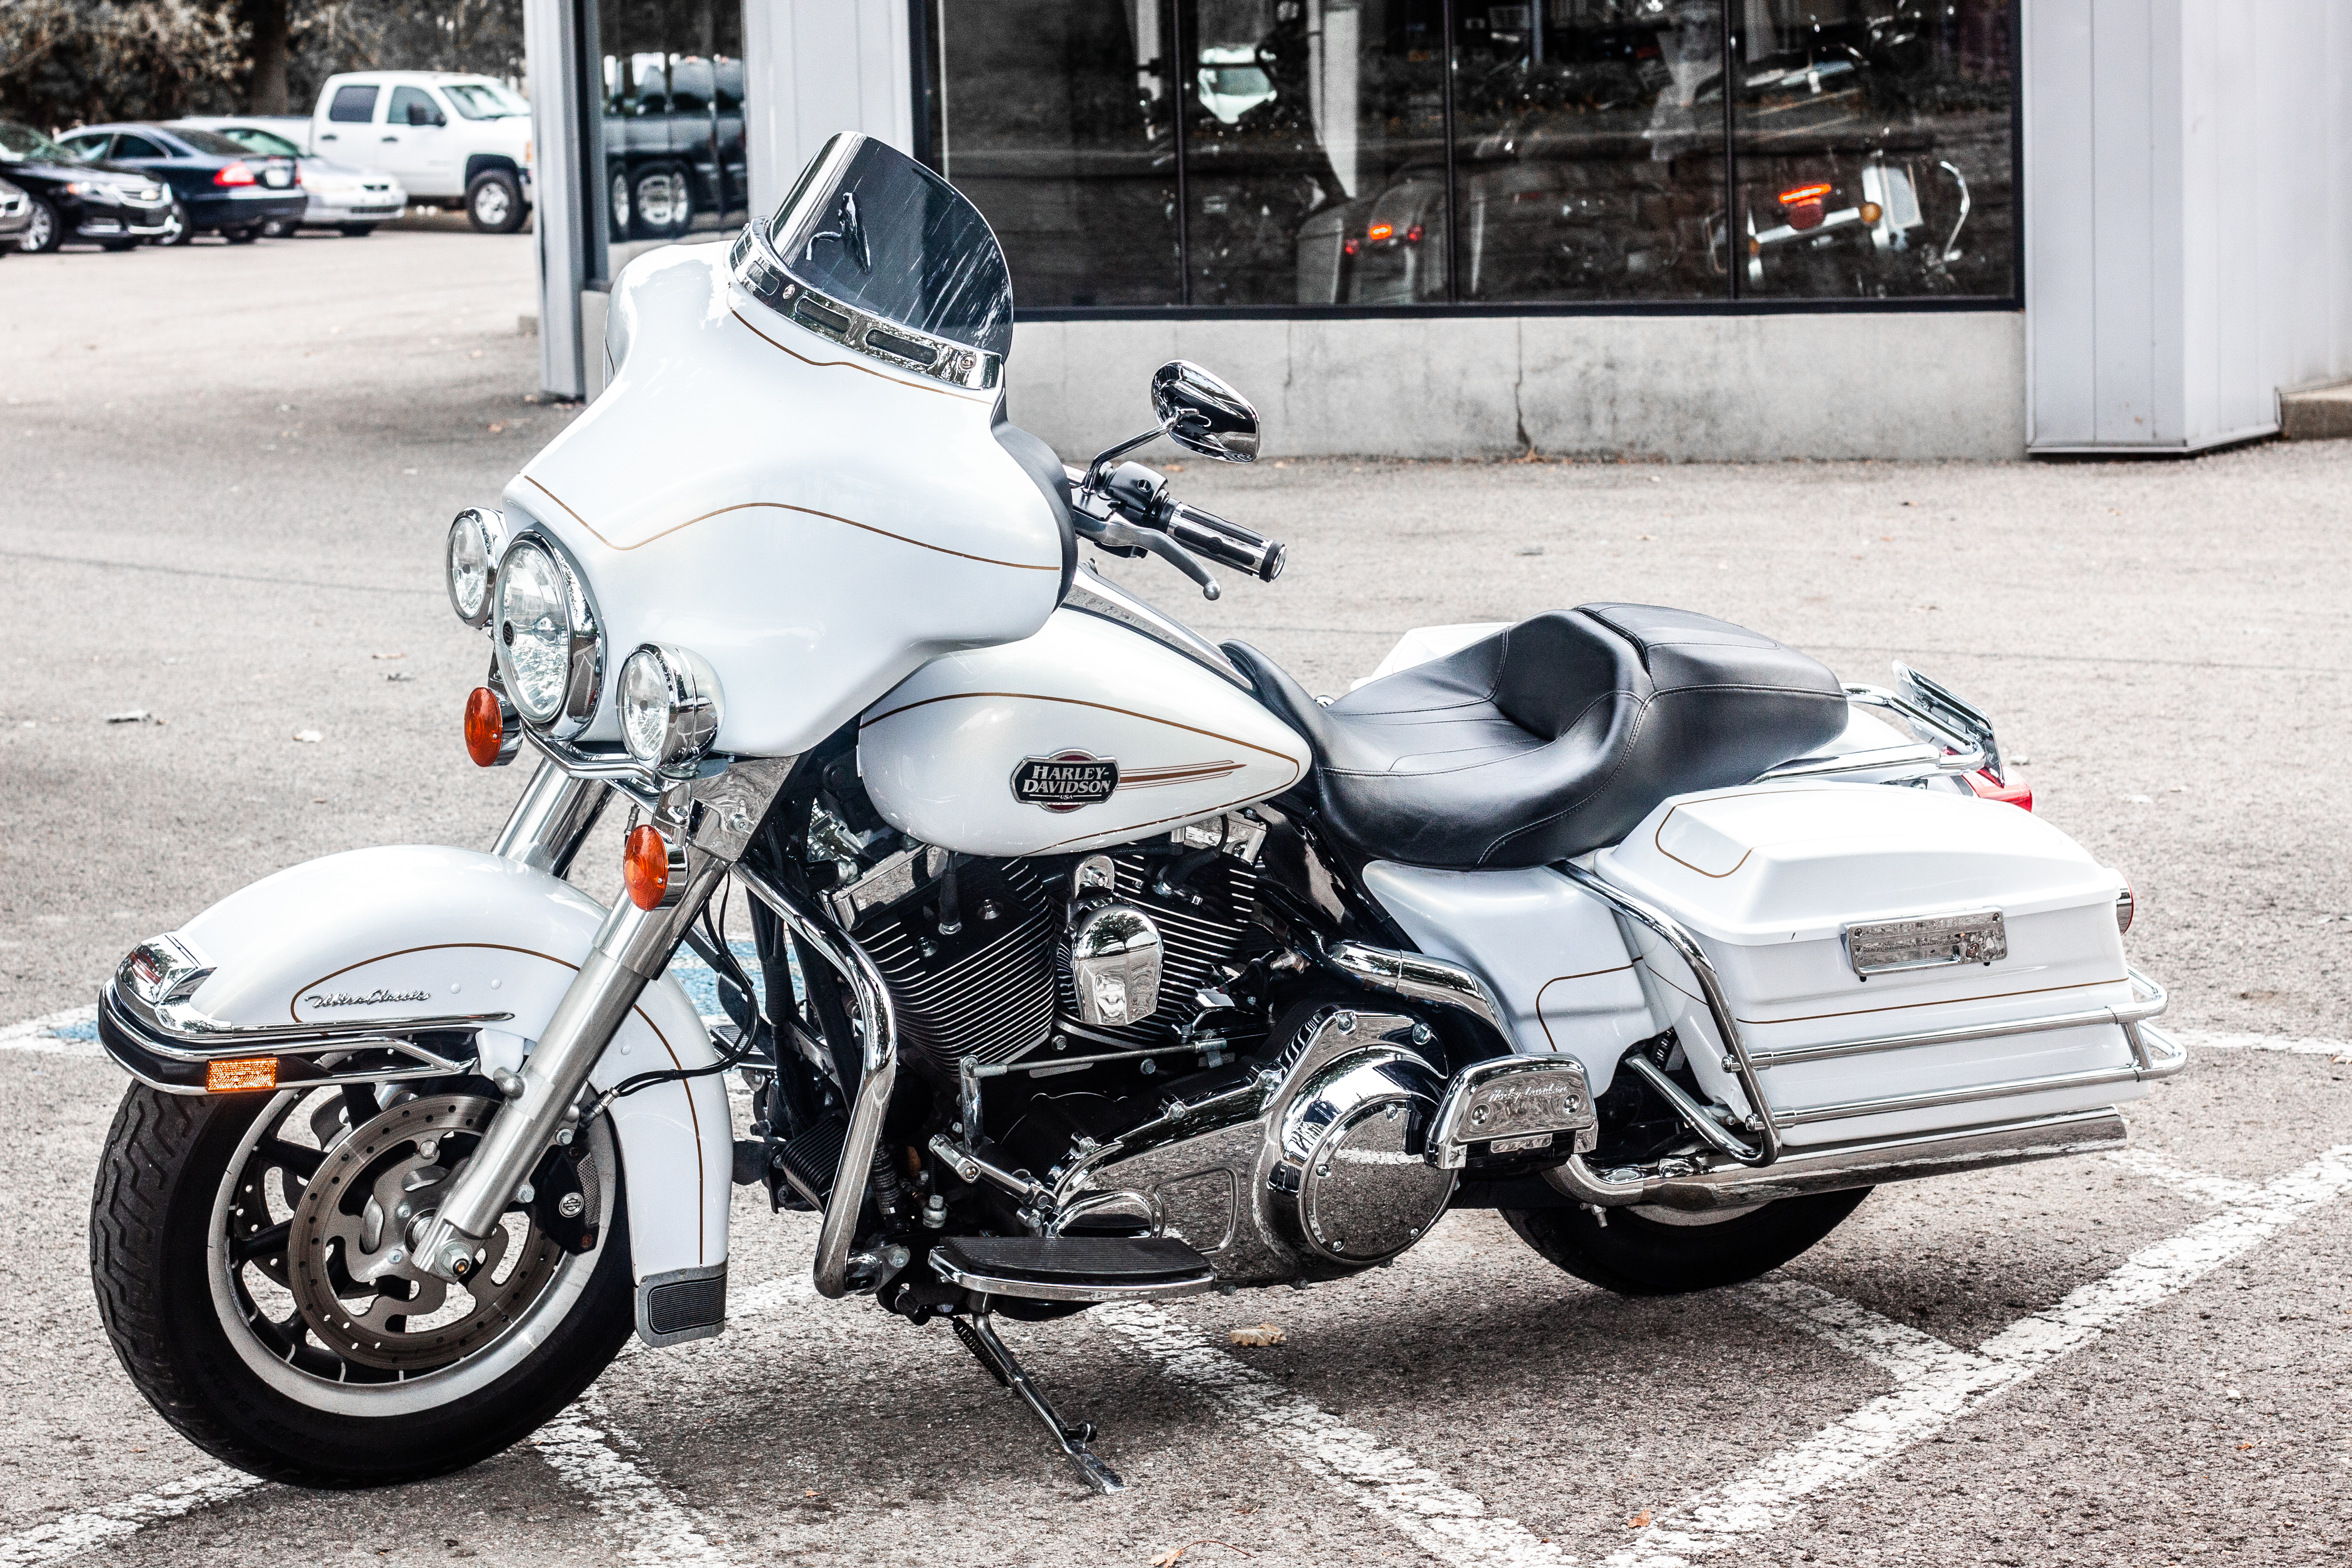 Pre-Owned 2008 Harley-Davidson Electra Glide Ultra Classic